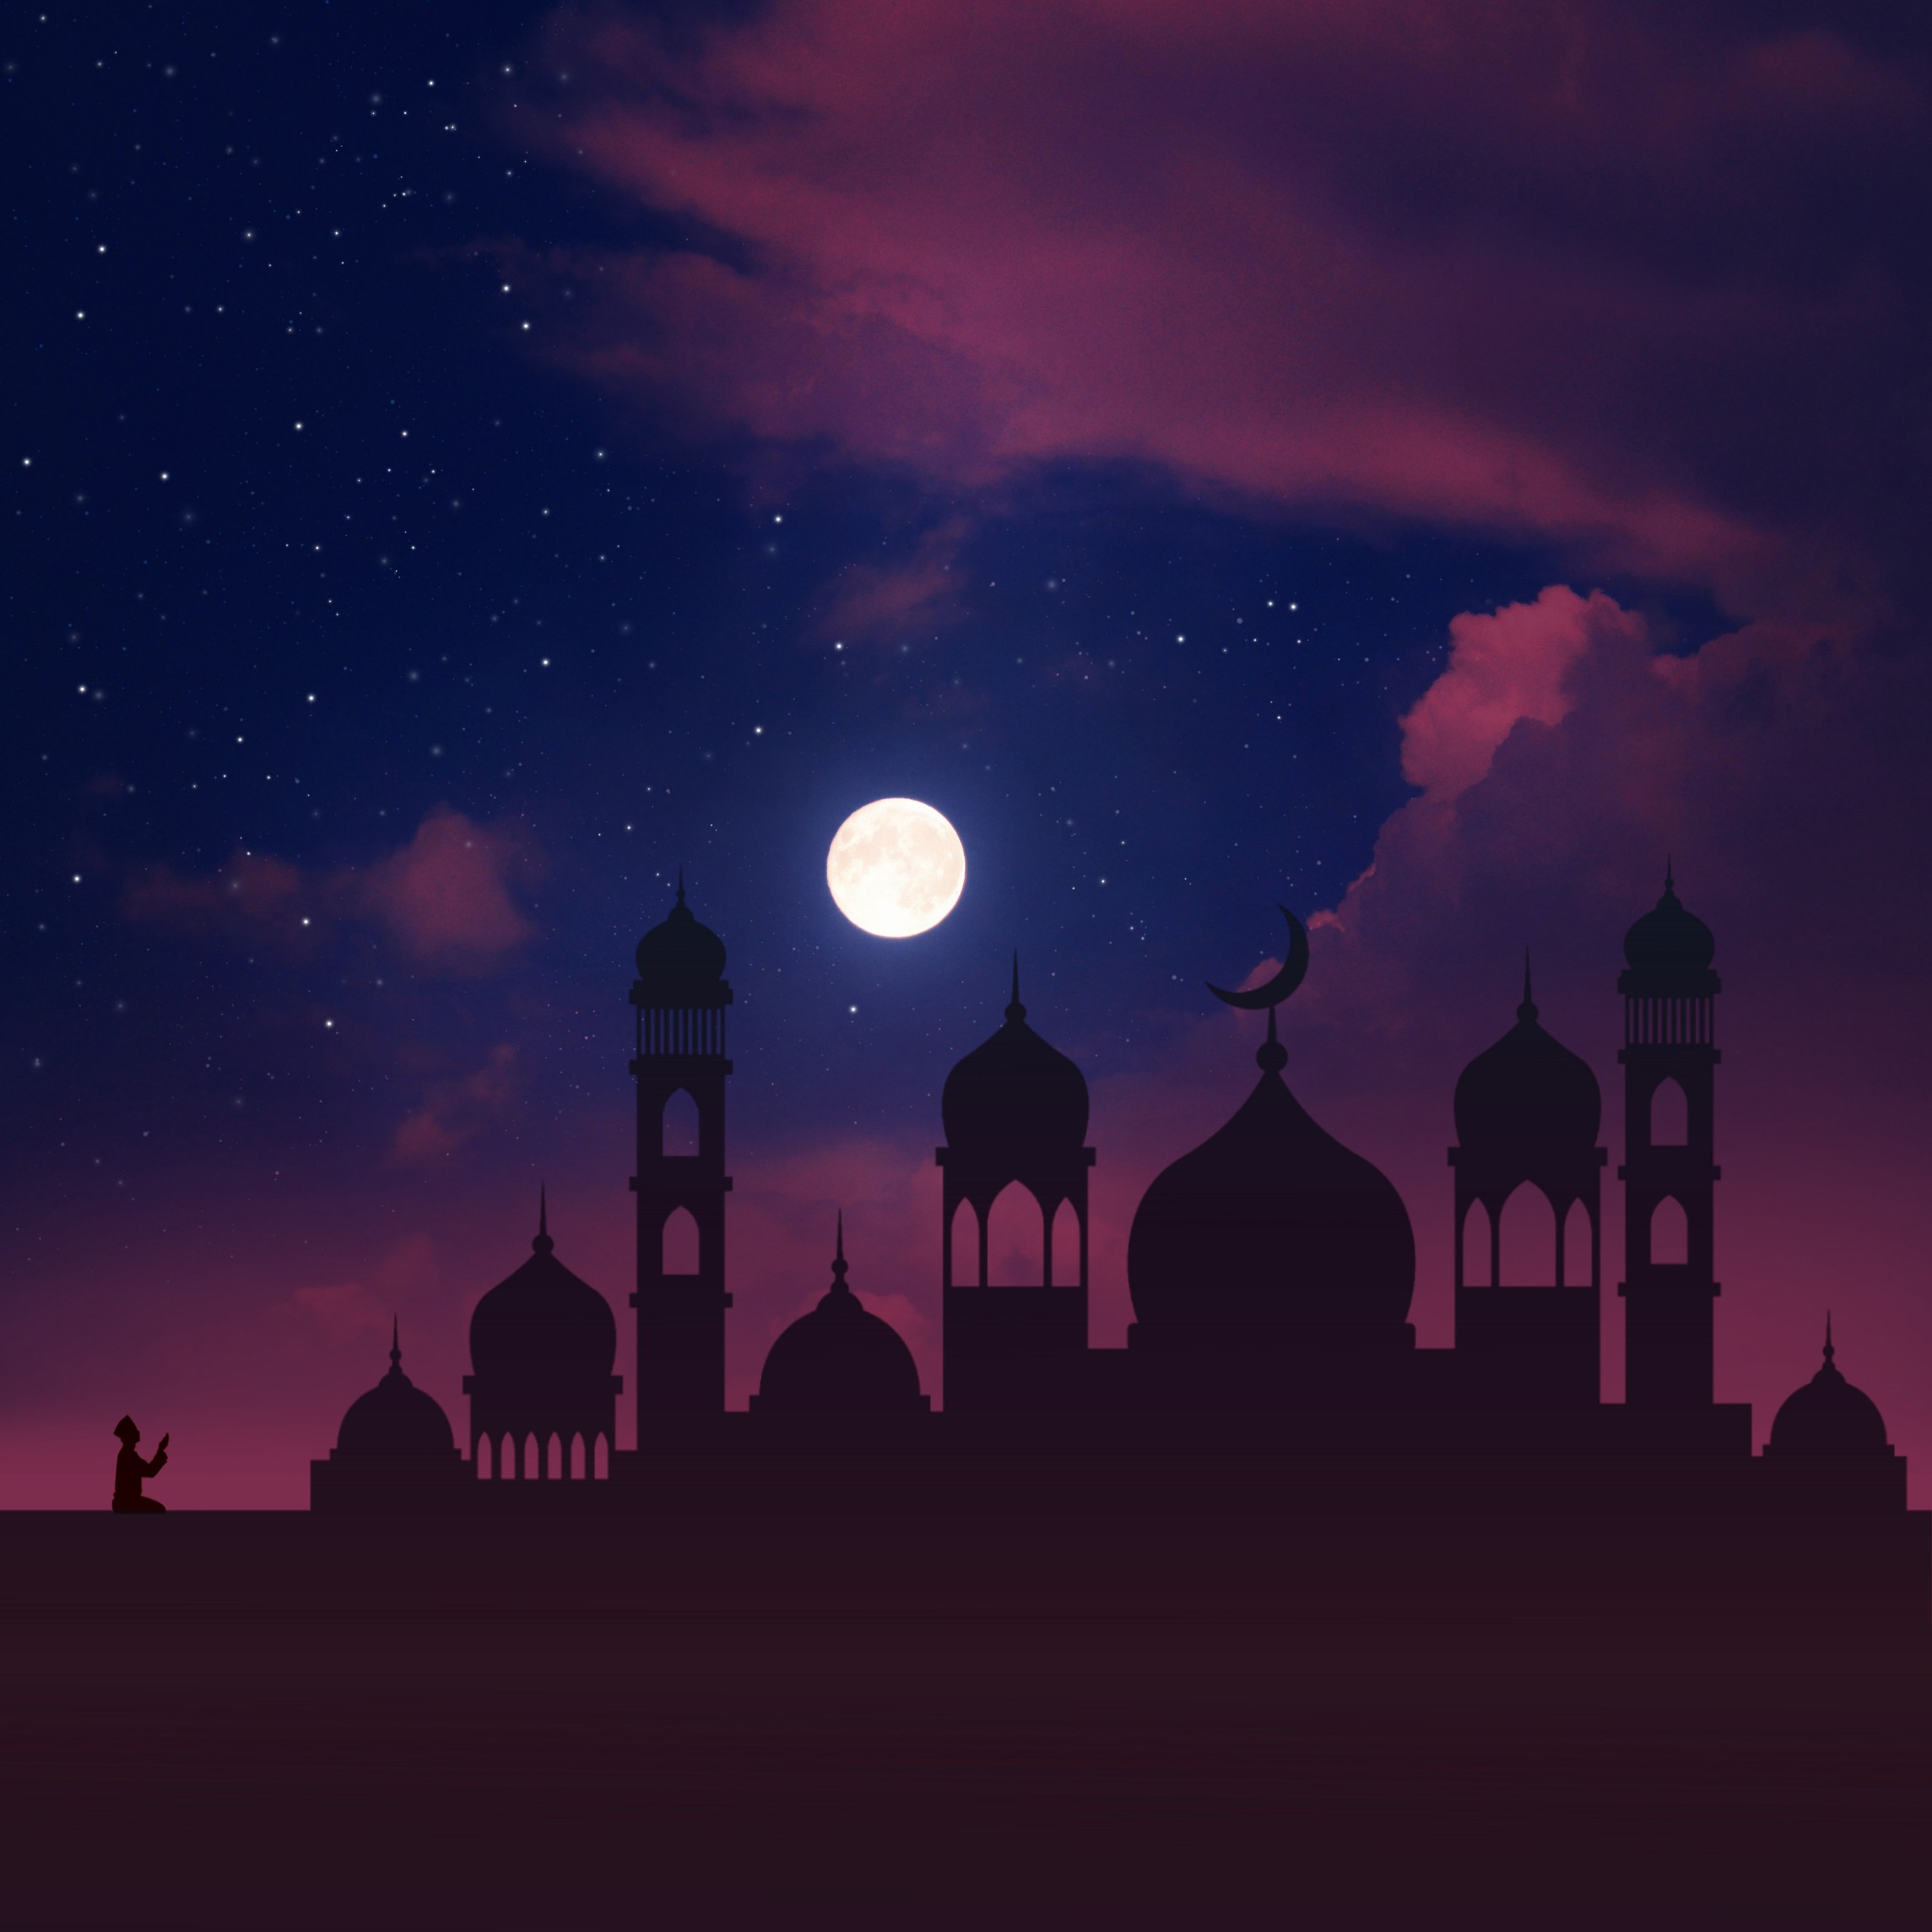 #freetoedit #background #papicks #ramadan #ramzan #clouds #cloud #sky #star #stars #moon #mosque #photomanipulation #madewithpicsart #creative #surreal #v